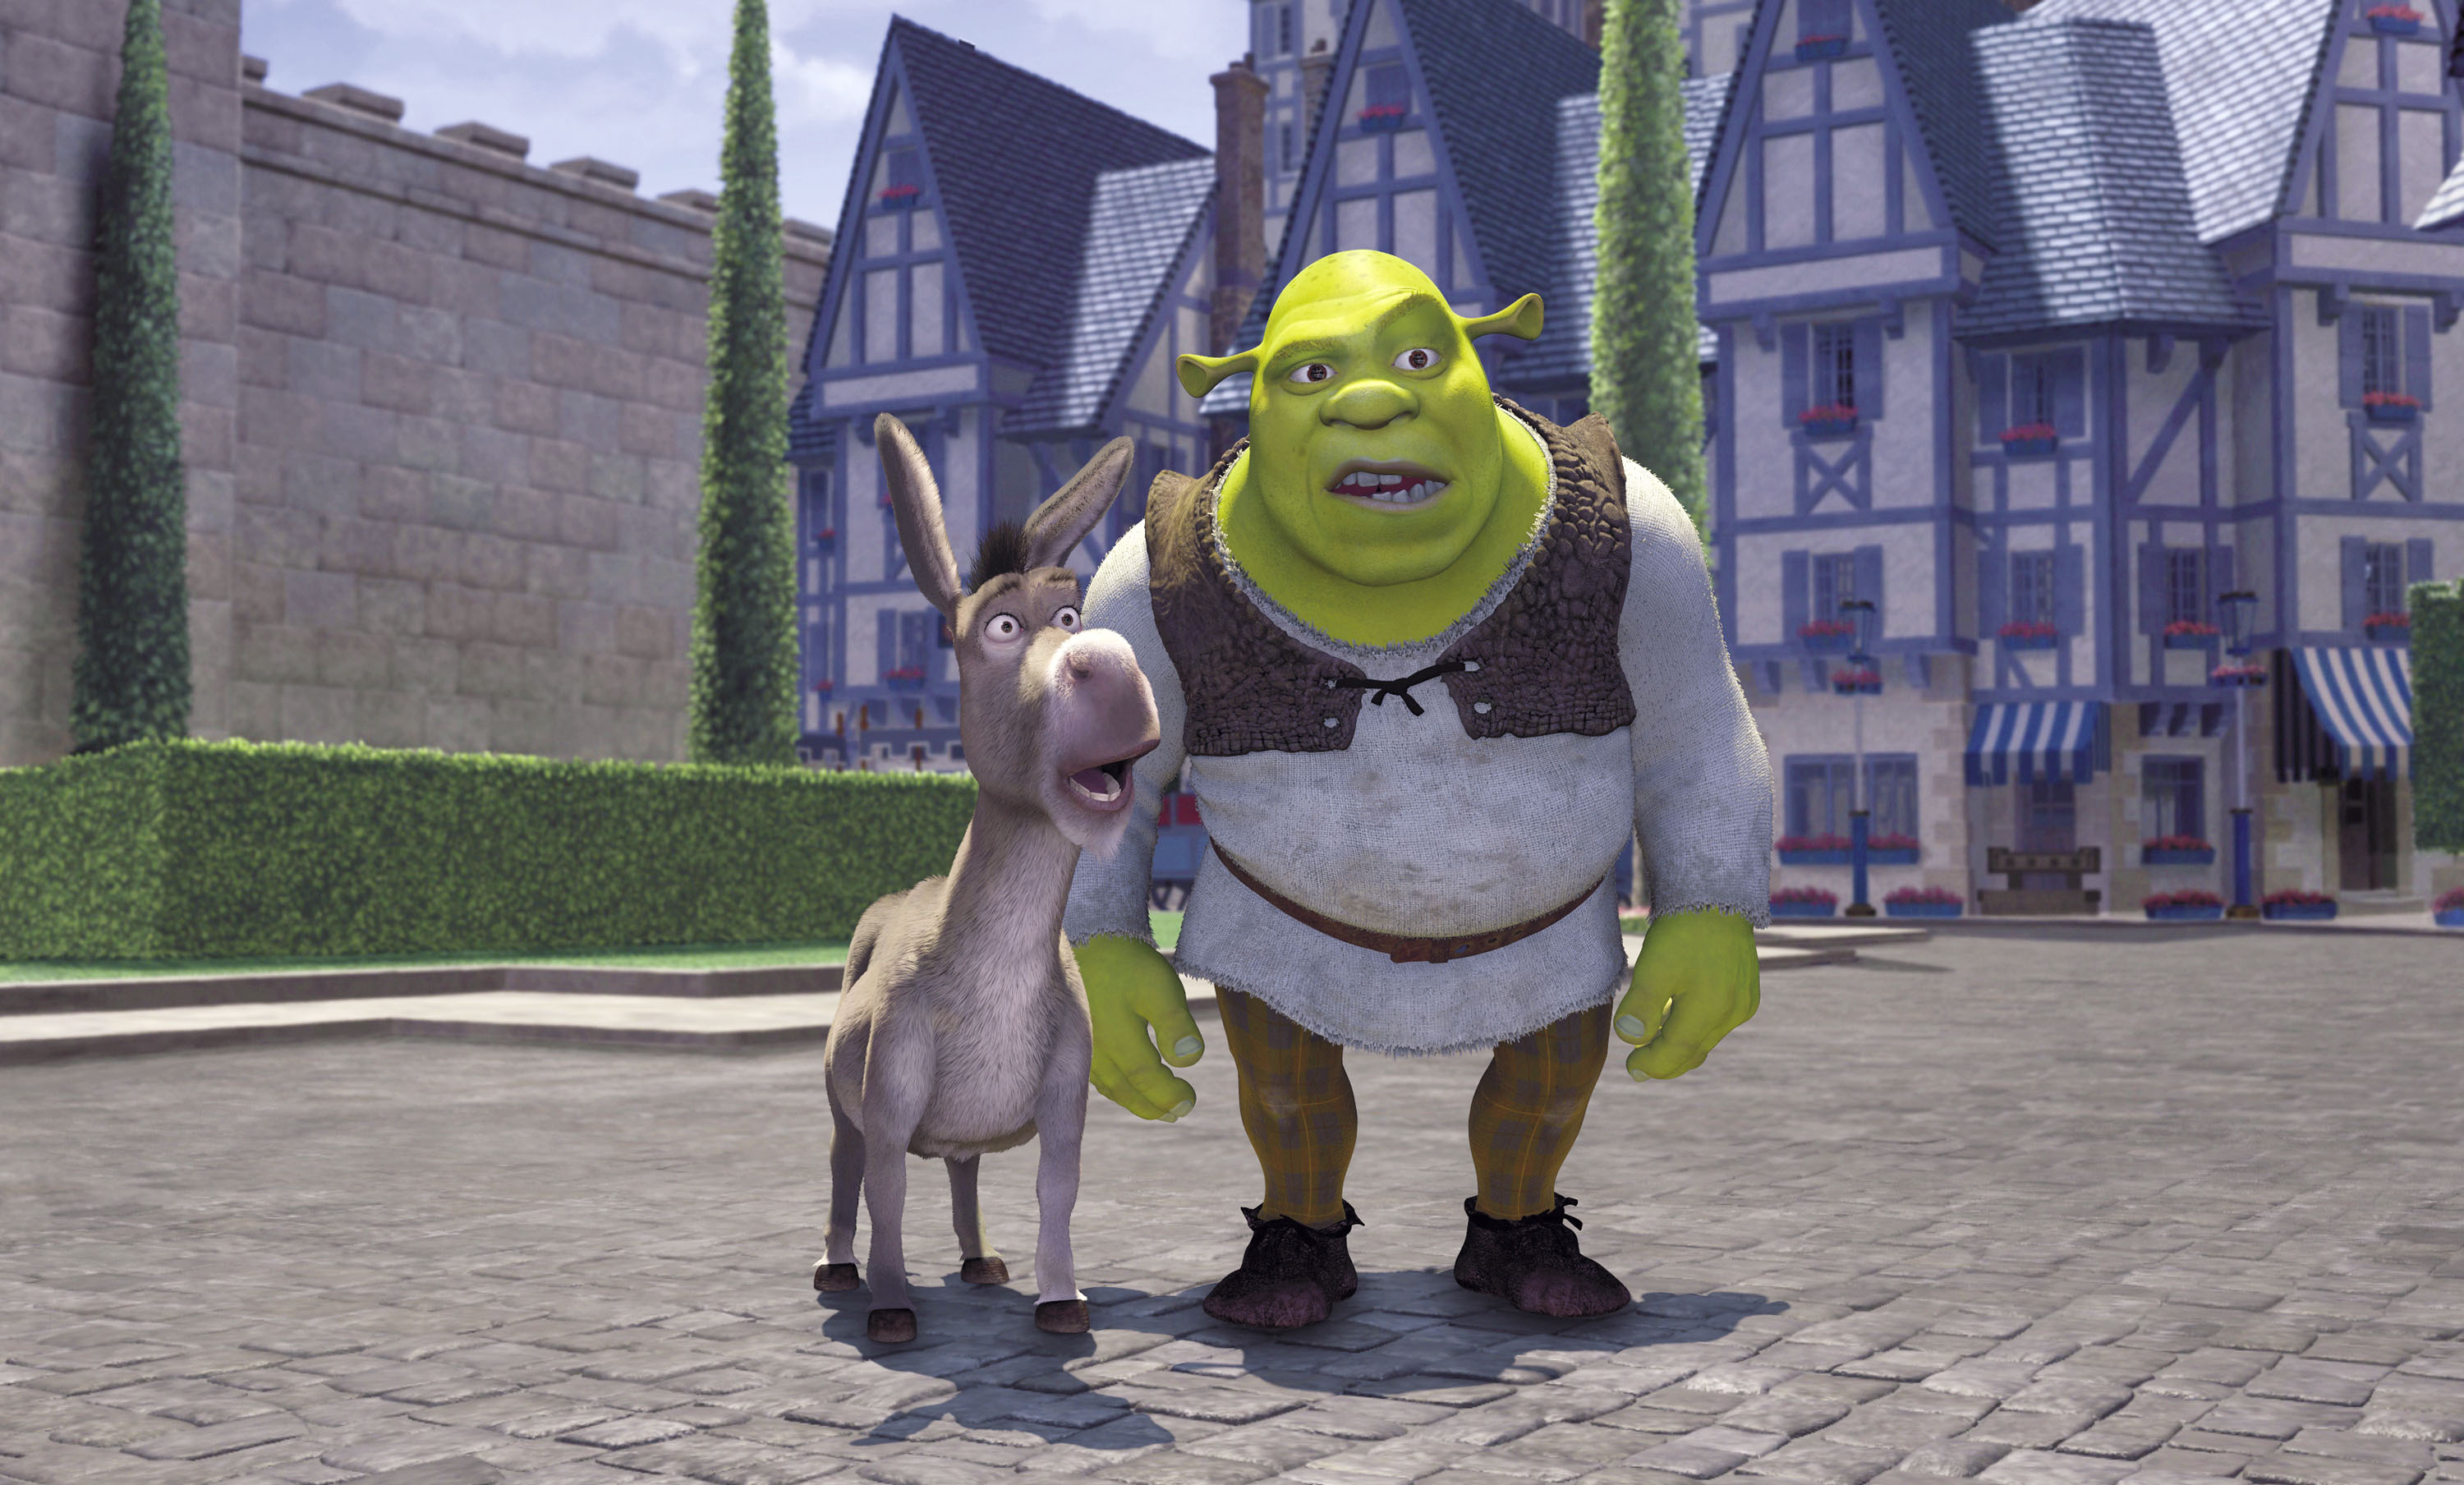 (l to r) The Donkey (voiced by Eddie Murphy) and Shrek (voiced by Mike Myers) in Shrek (2001)